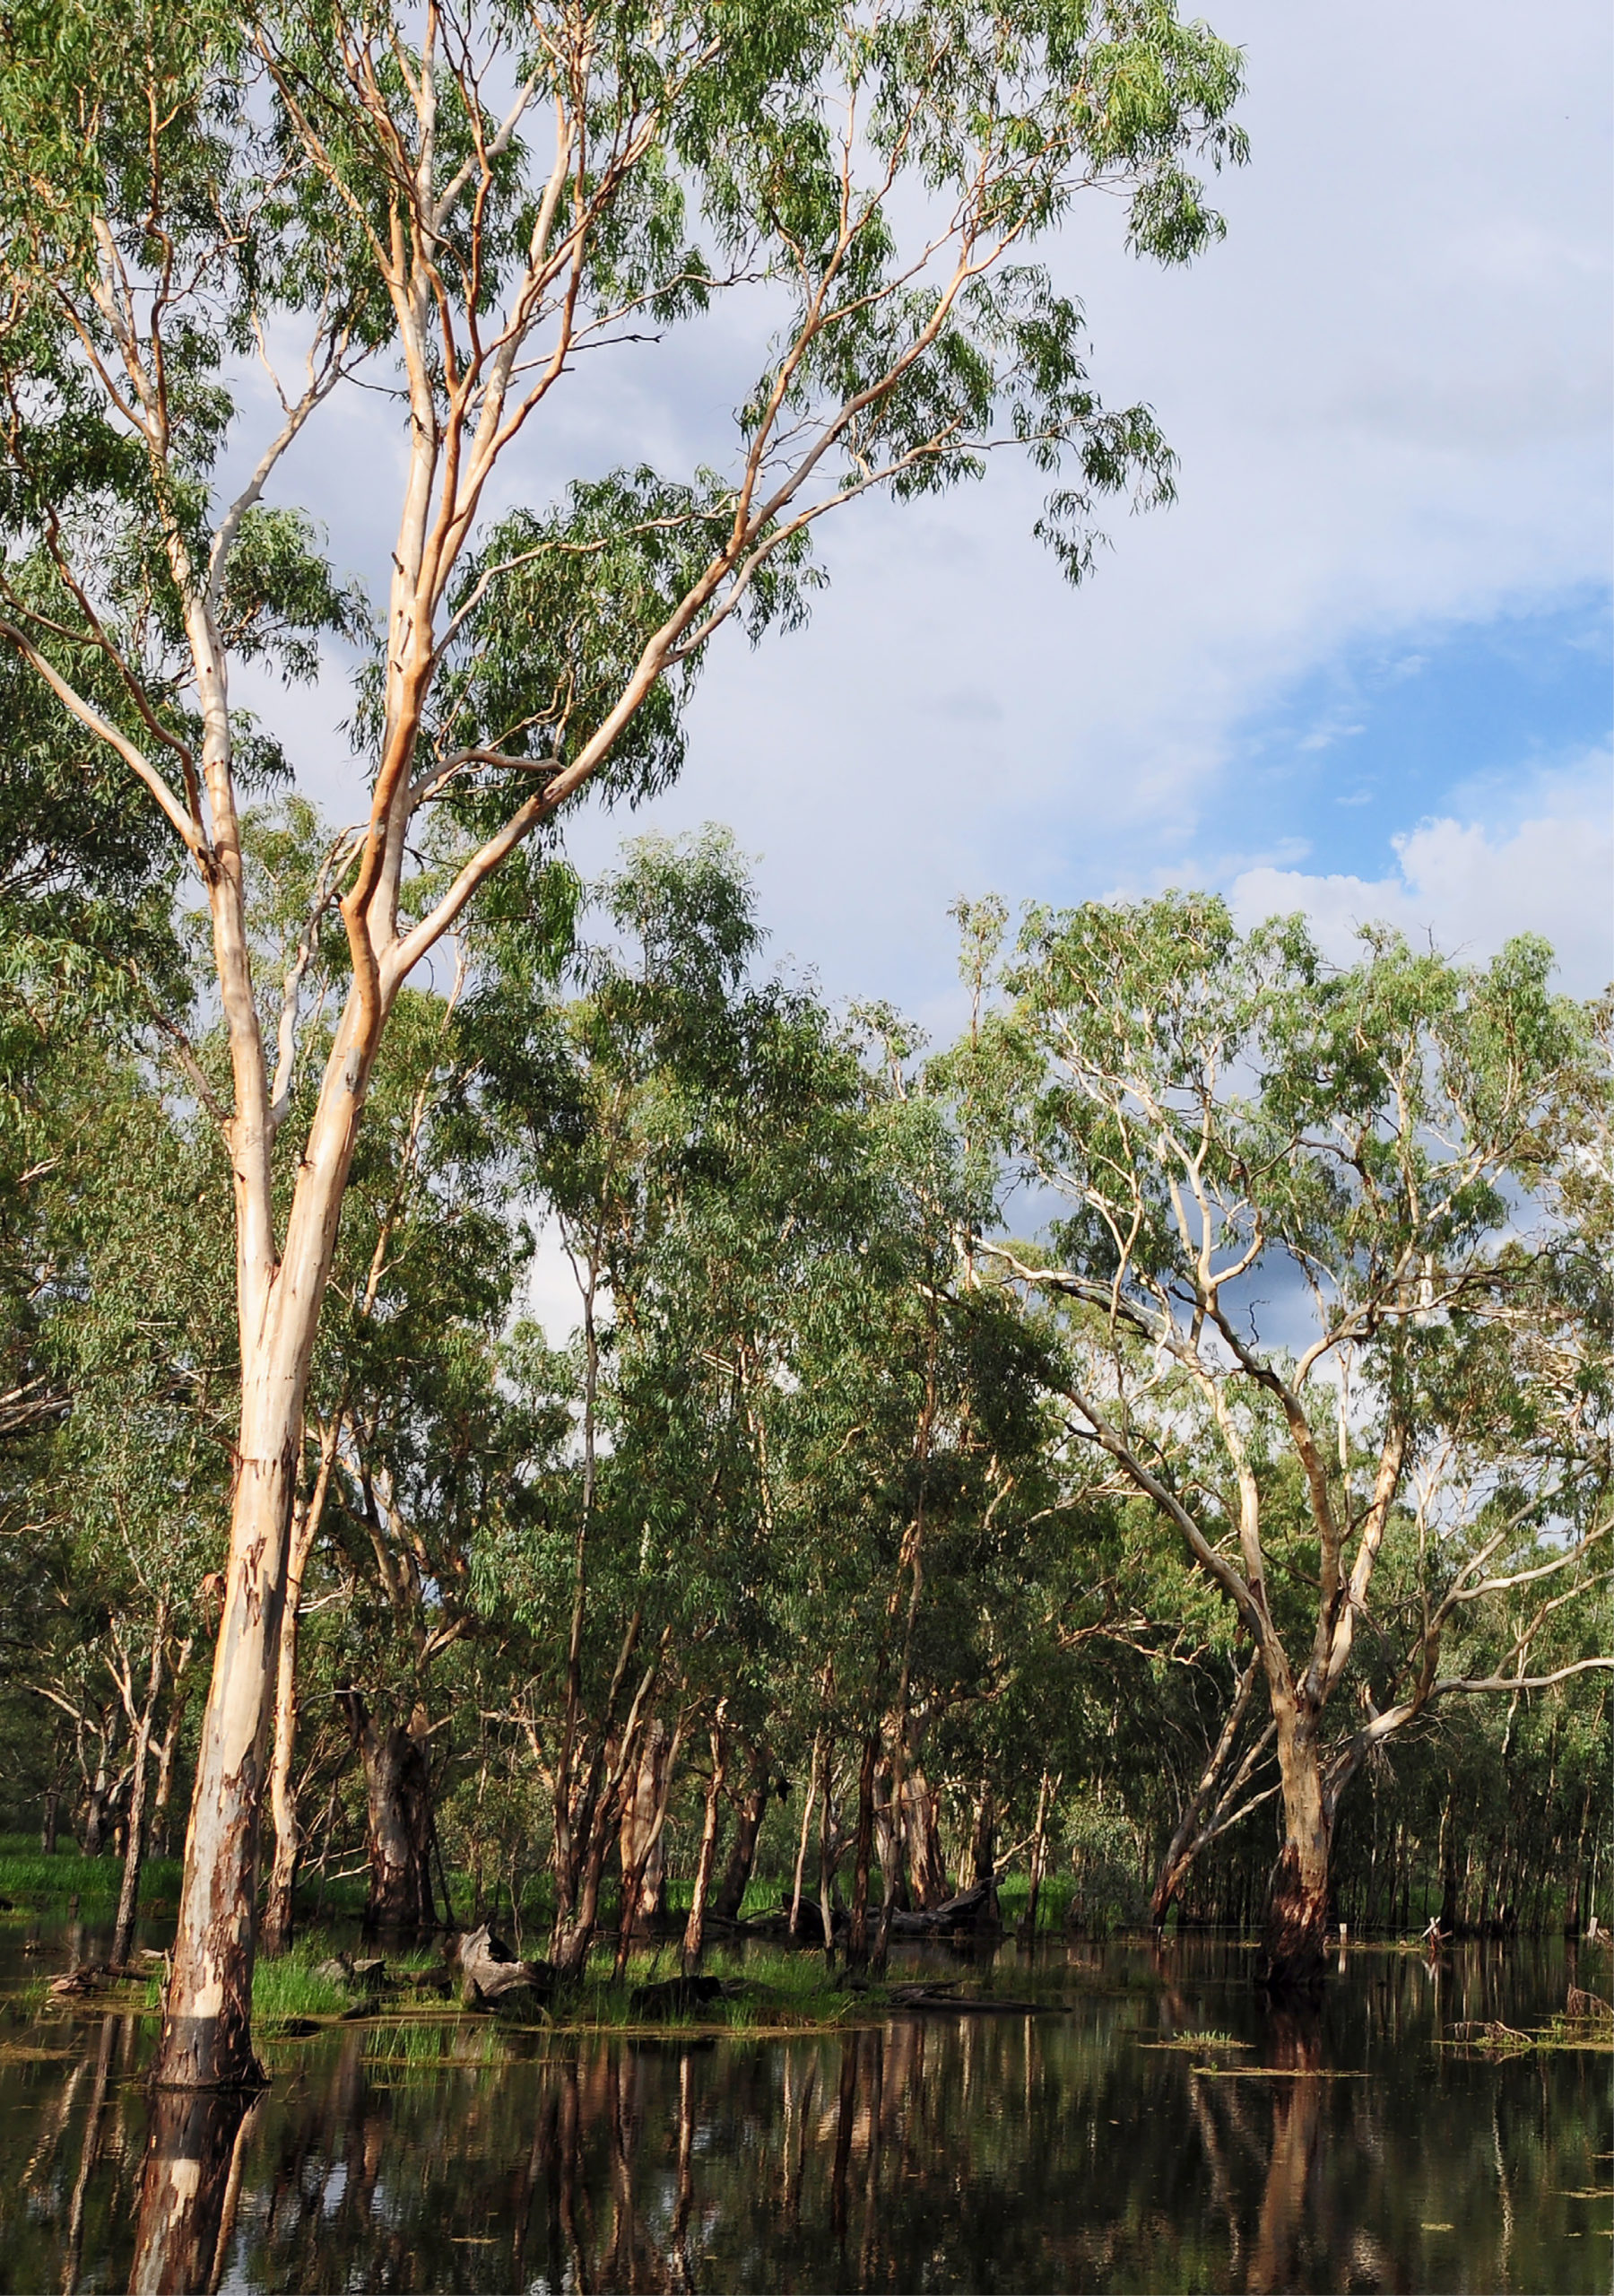 the murray darling basin - an image of the trees on the banks of the basin where you ca see the reflection of the trees on the surface of the water